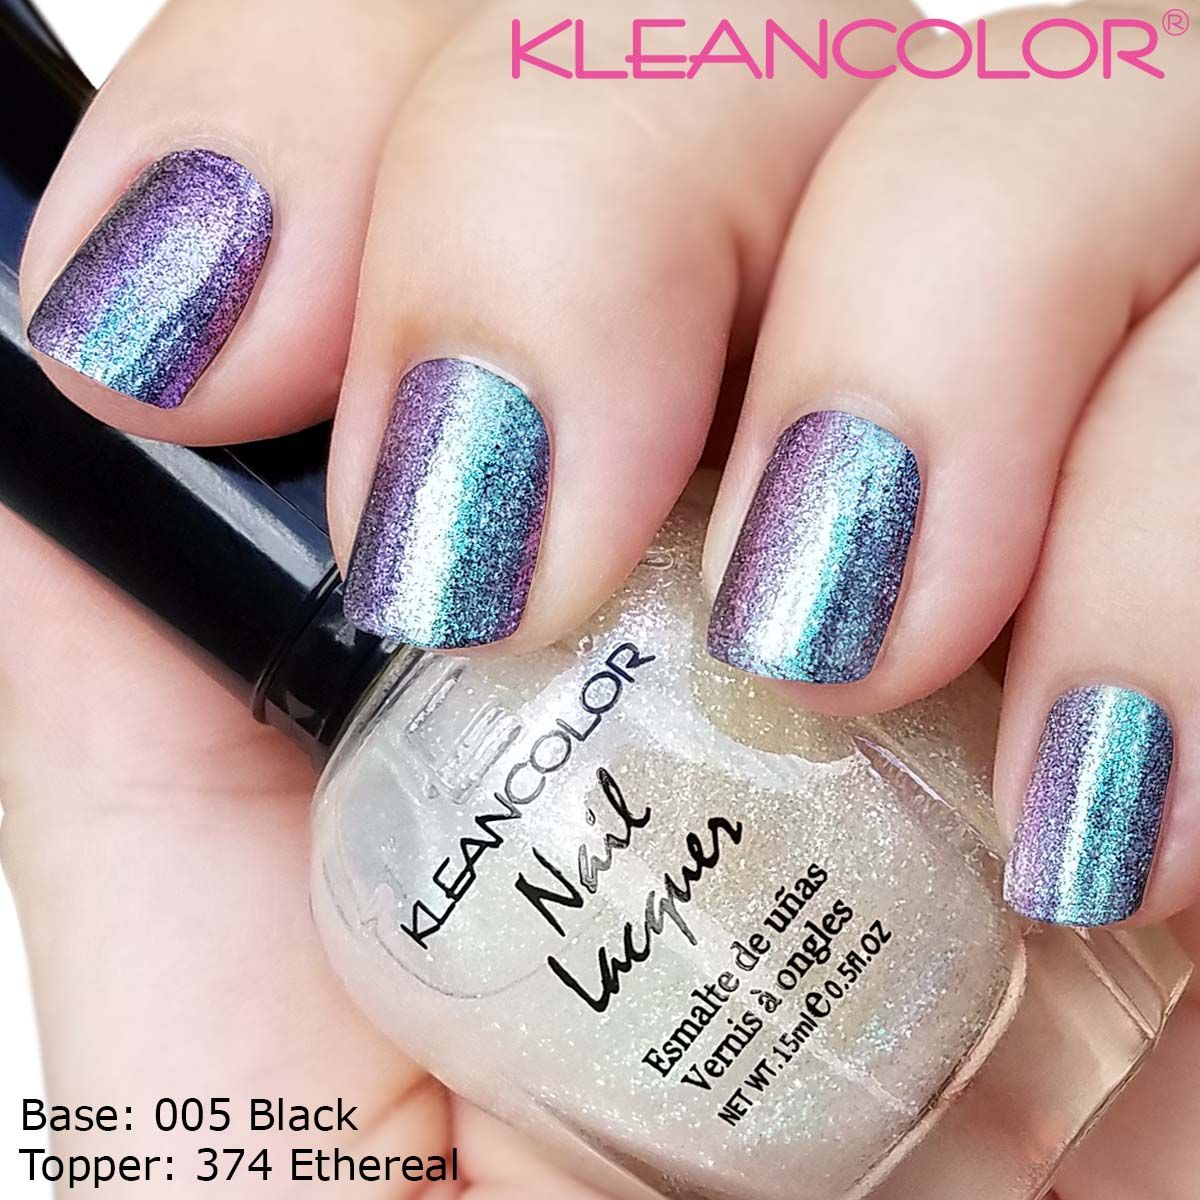 Holographic Topper in Ethereal (374) shown here over Nail Lacquer in ...